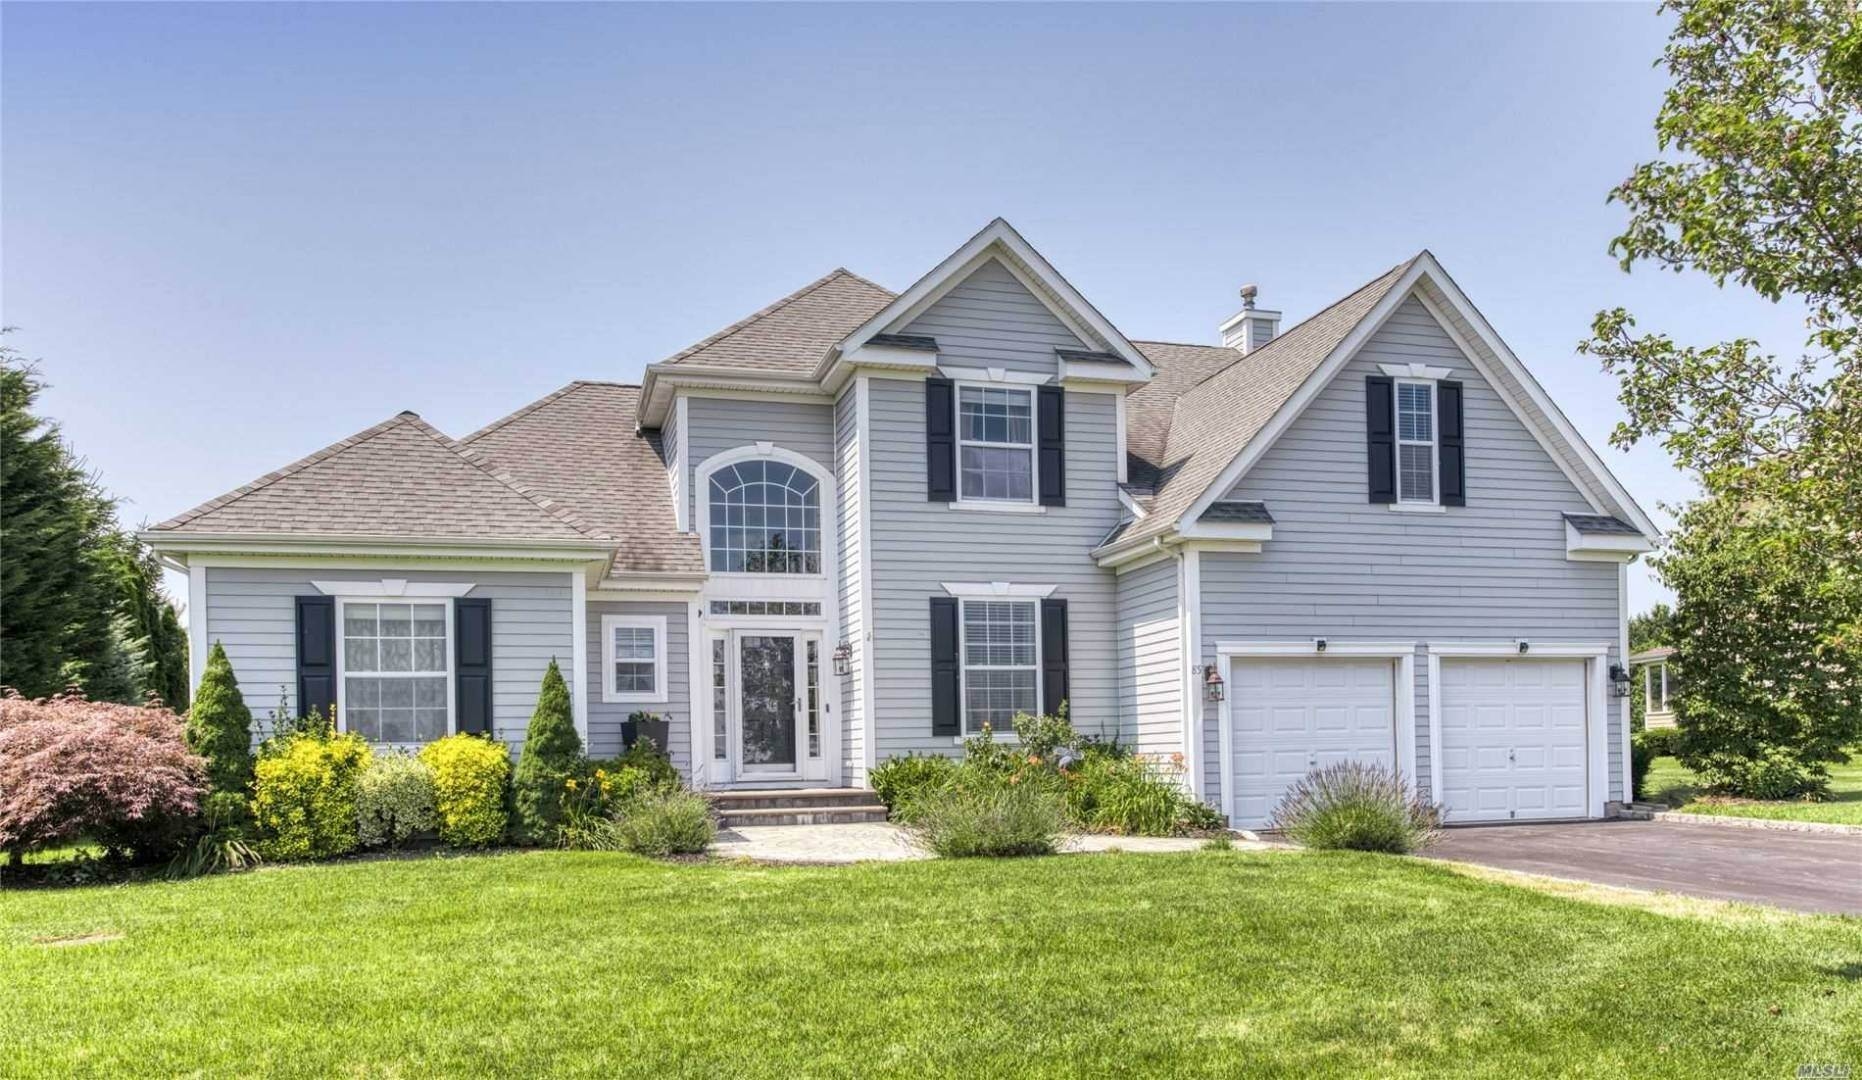 Single Family Home for Sale at Stunning Hampton Post Modern In The Highland Club At Reeves Hoa 85 Windflower Ln, Riverhead, NY 11901